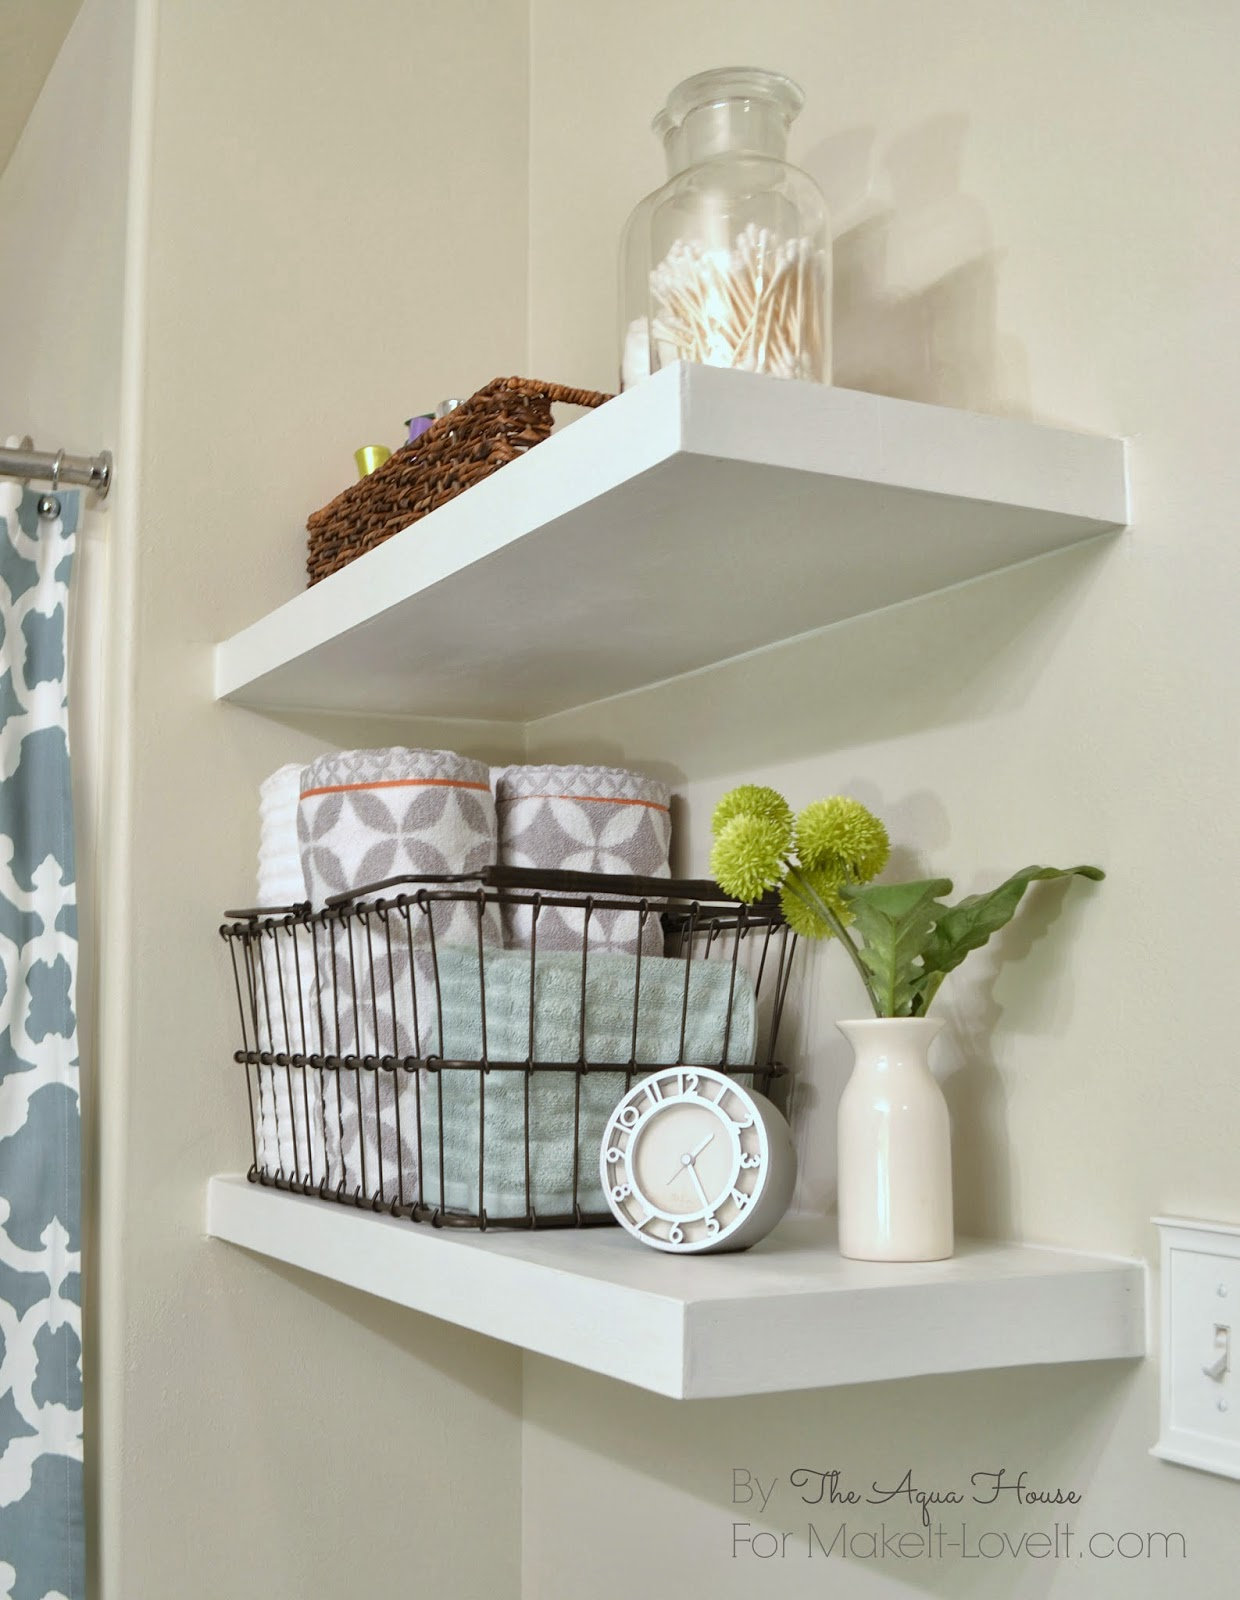 27 Bathroom Shelf Ideas To Keep Your Space Uncluttered